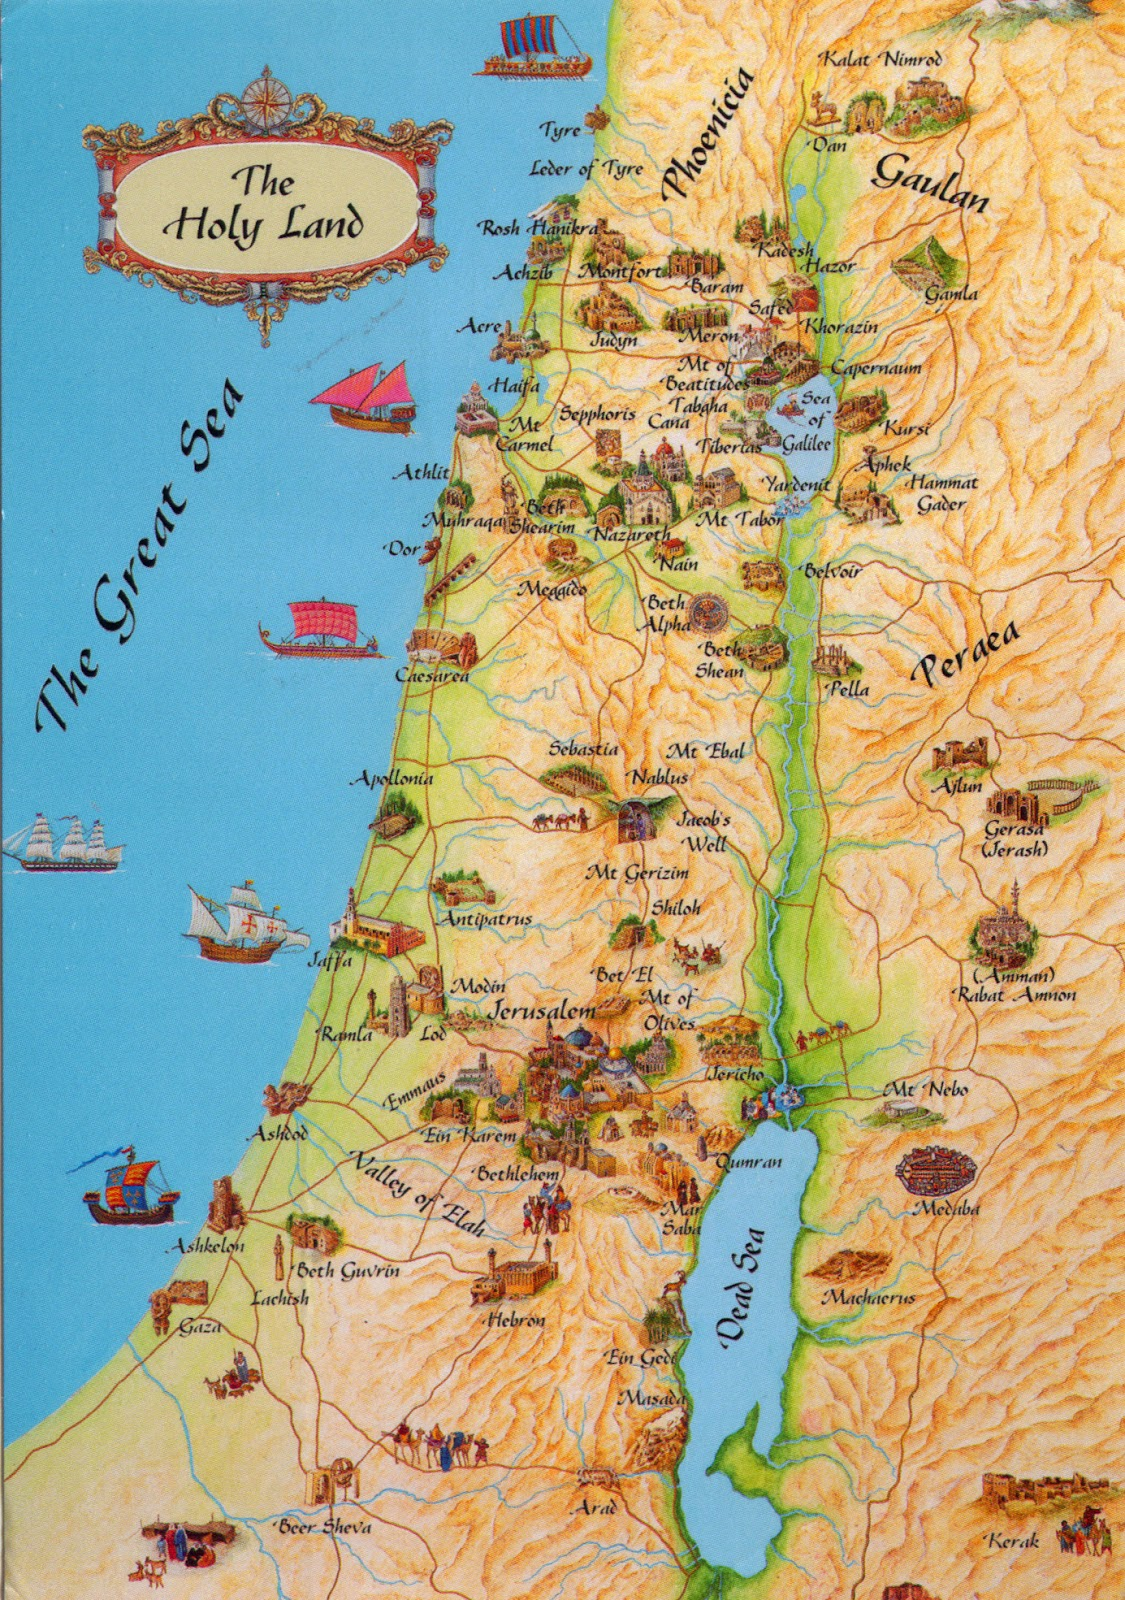 World come to my home 0315 israel the map of the holy land 0315 israel the map of the holy land gumiabroncs